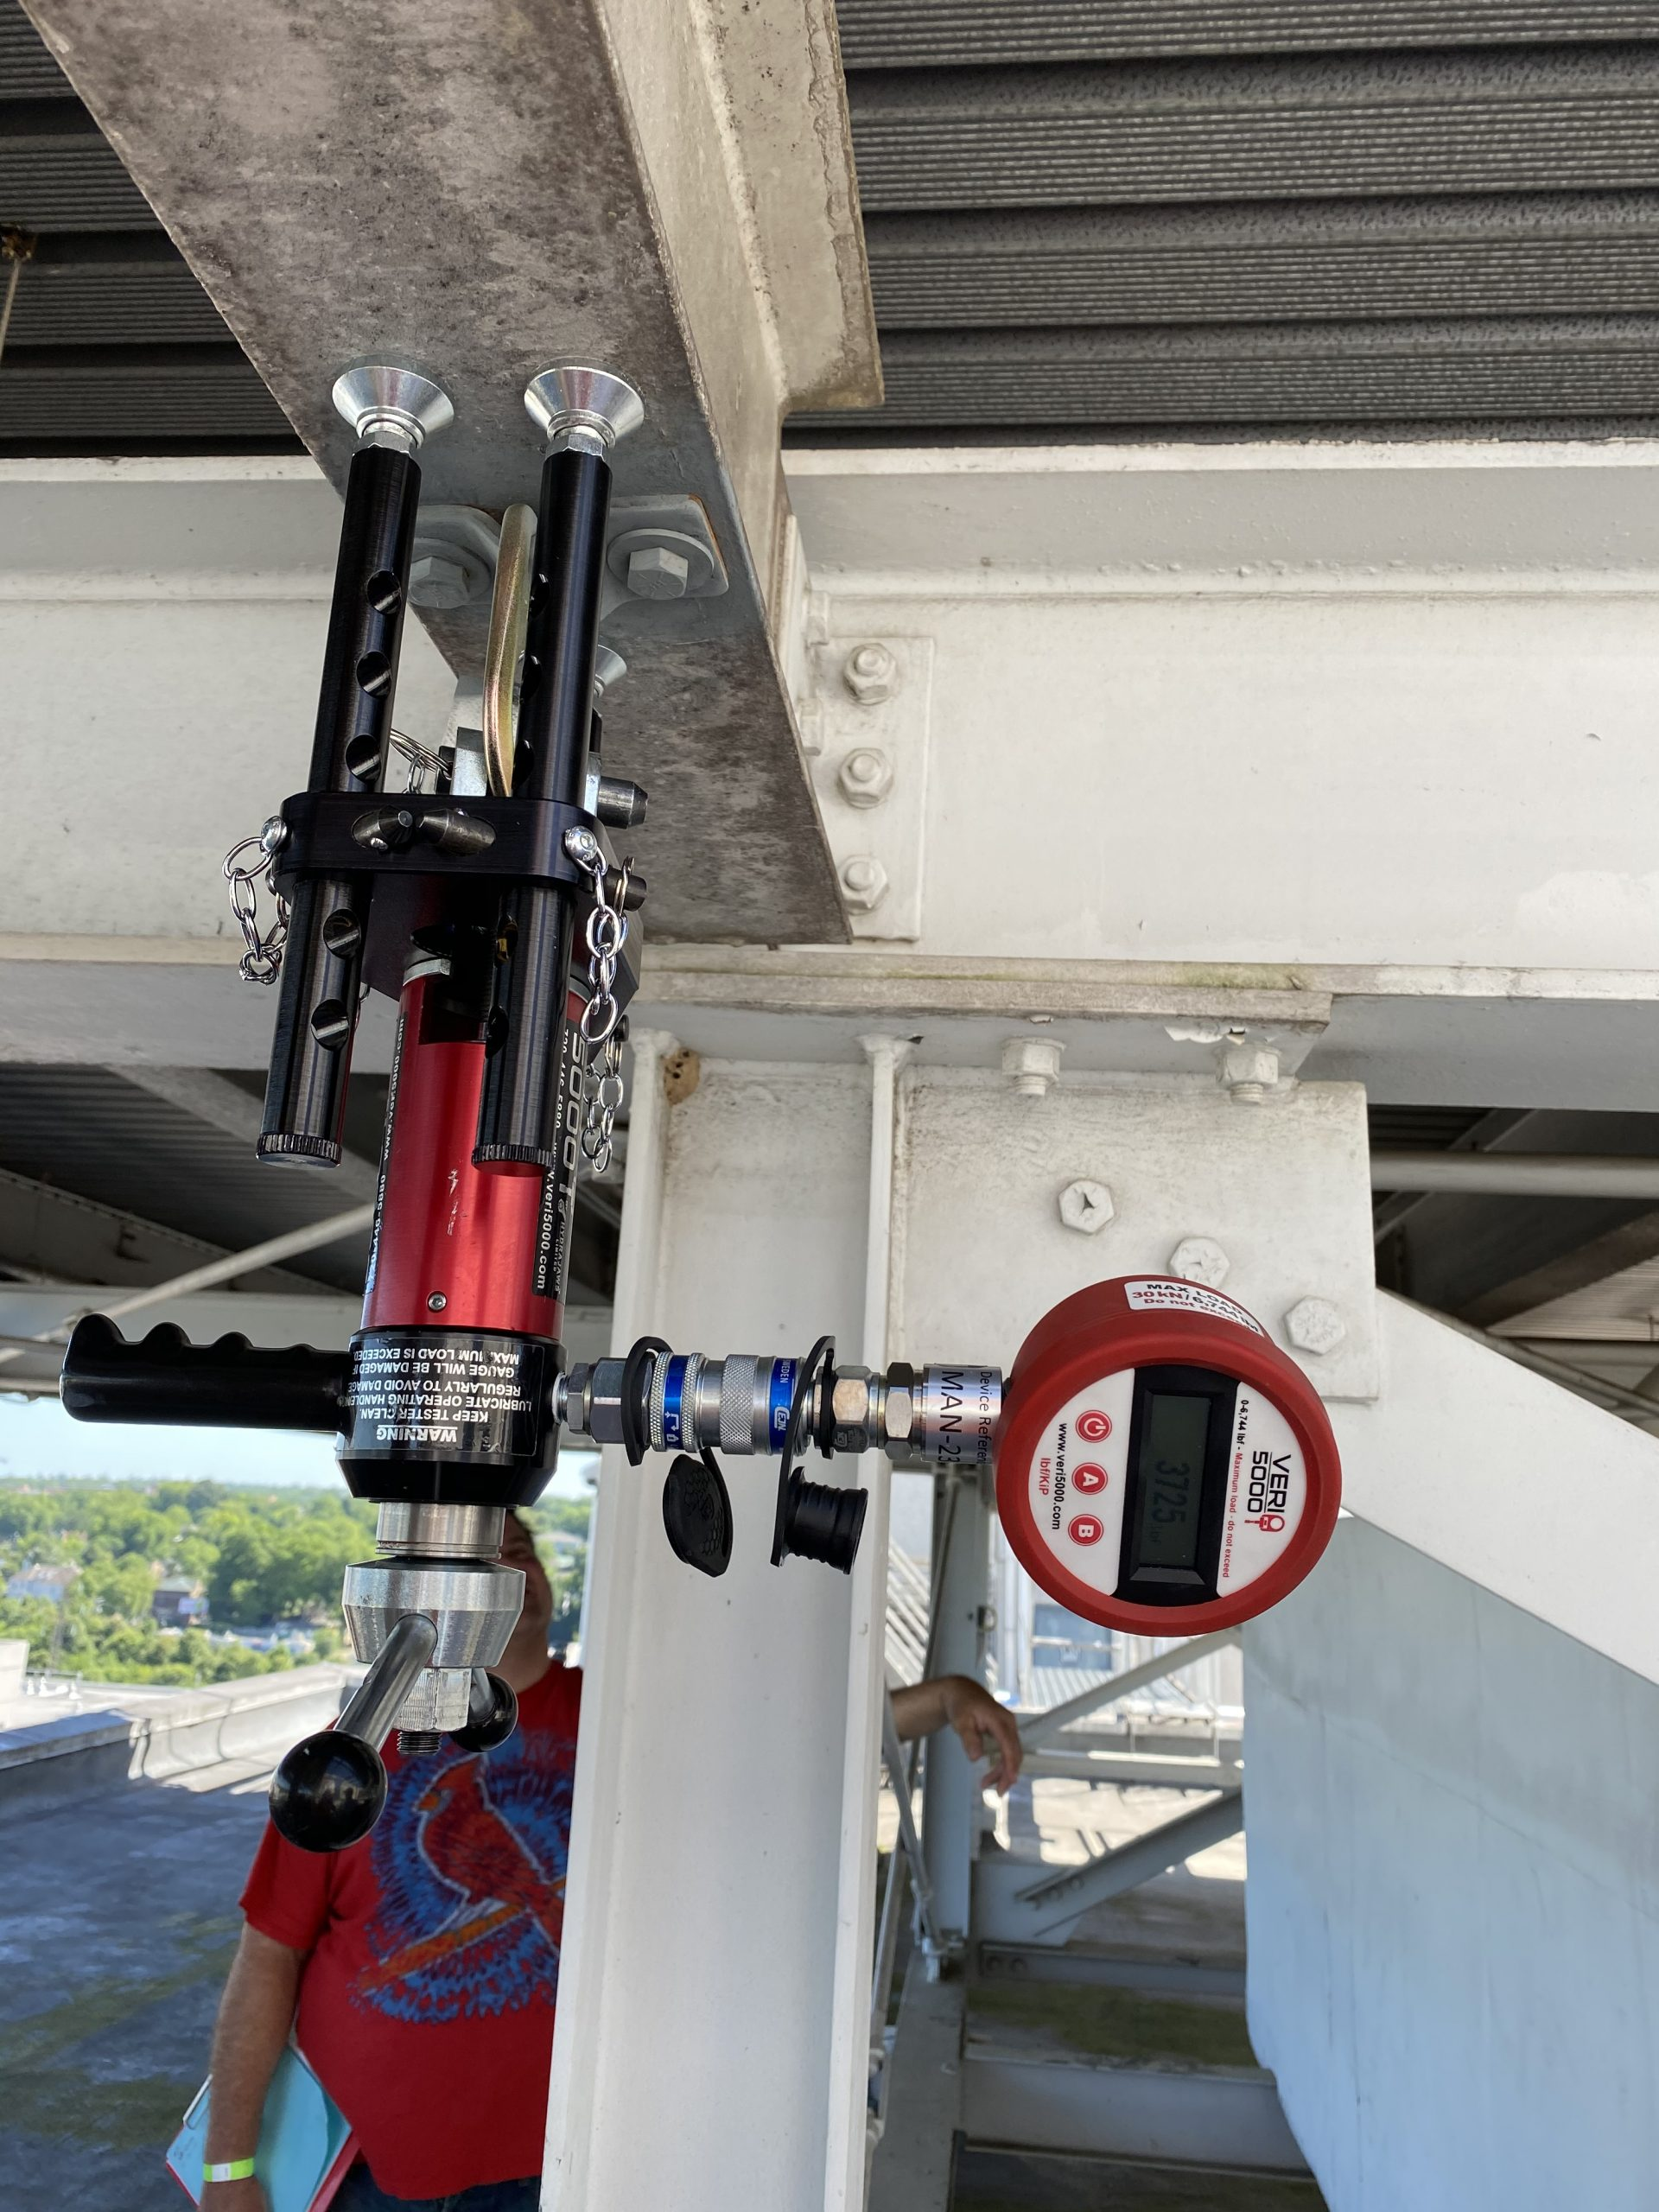 We validate, test, record, and label each anchor with GPS location